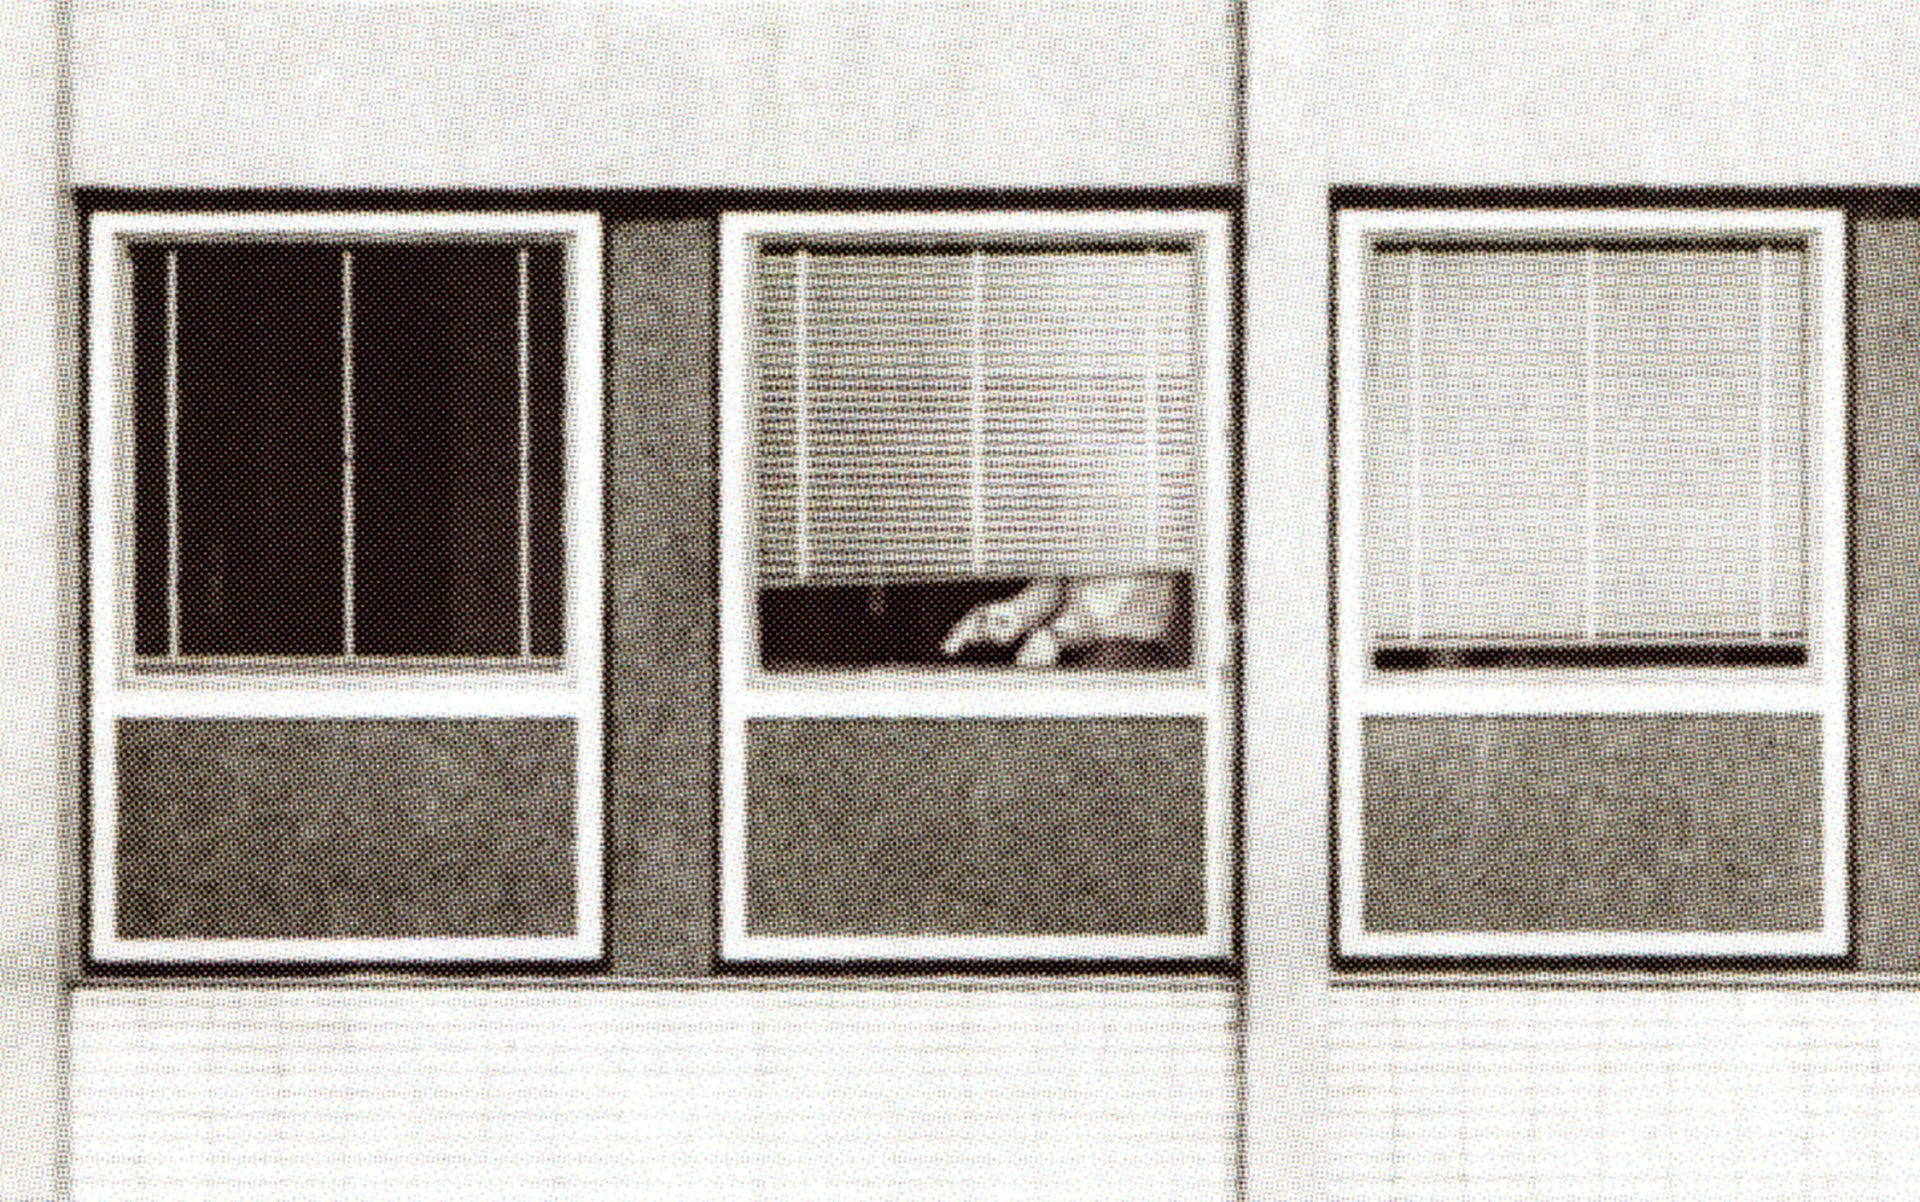 David Možný, Watching Windows, snimek z videa, 2019